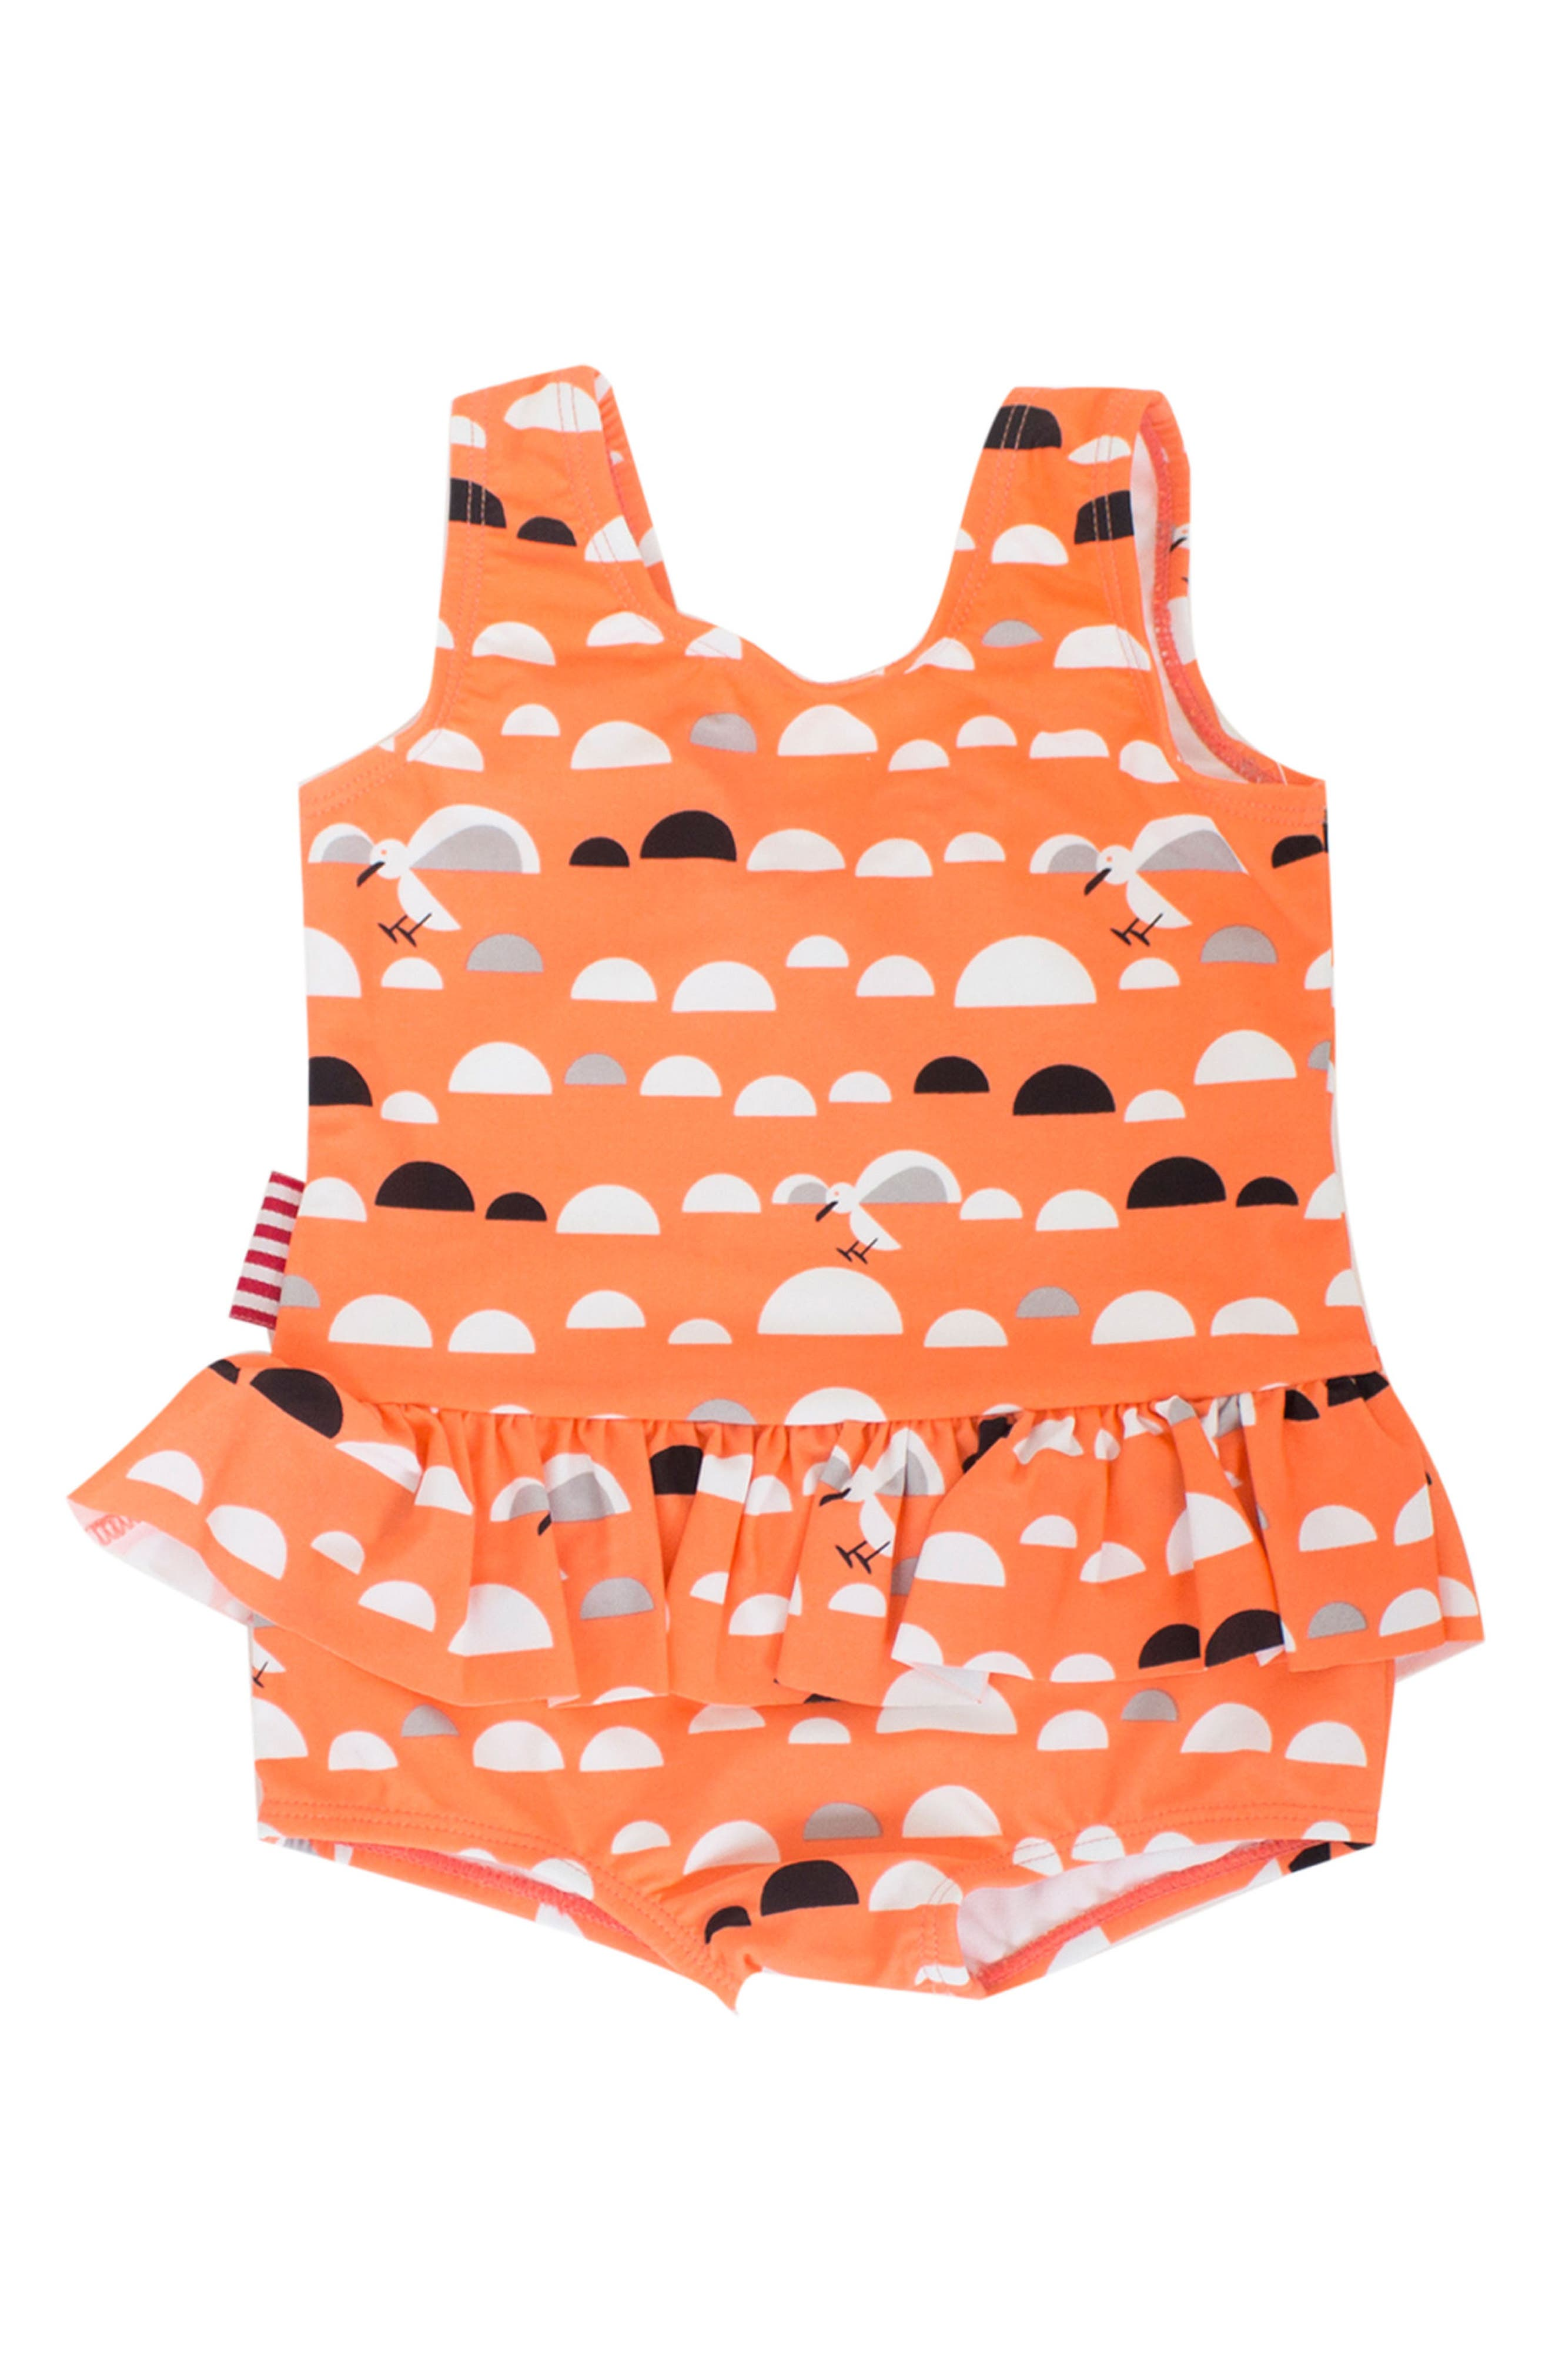 Main Image - SOOKIbaby Little Miss C.Gull Skirted One-Piece Swimsuit (Baby Girls)